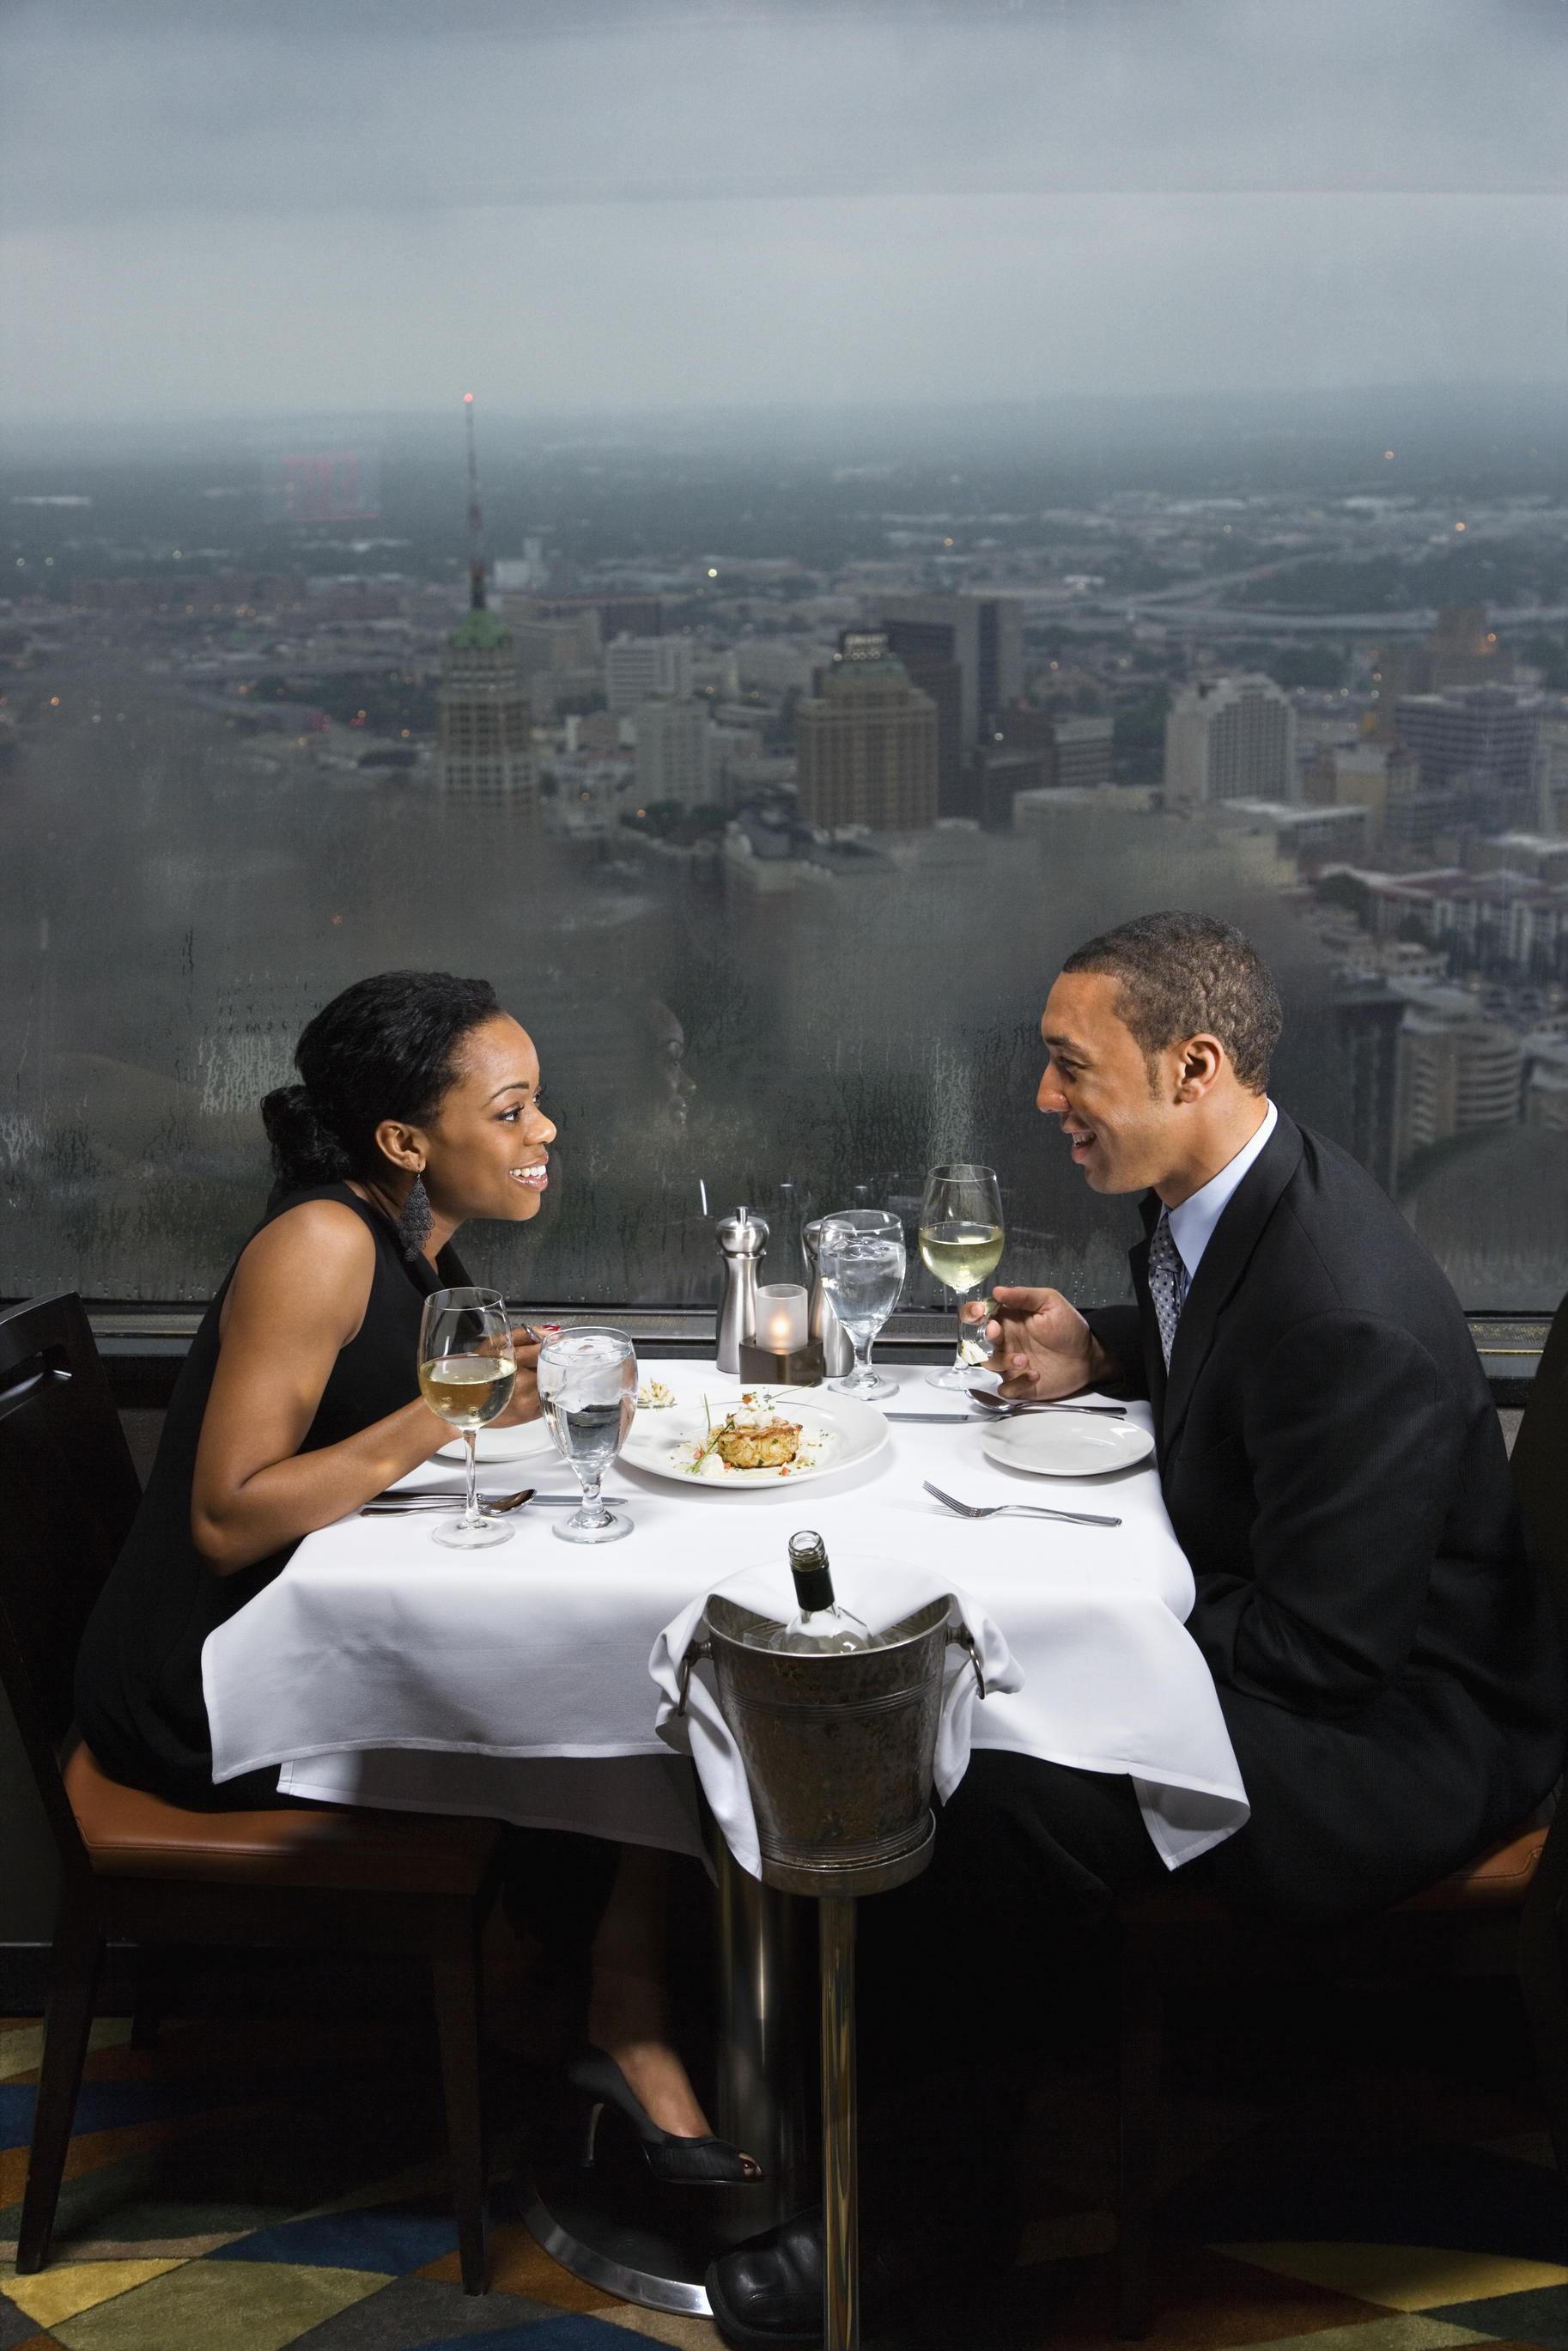 dinner date with a view st louis